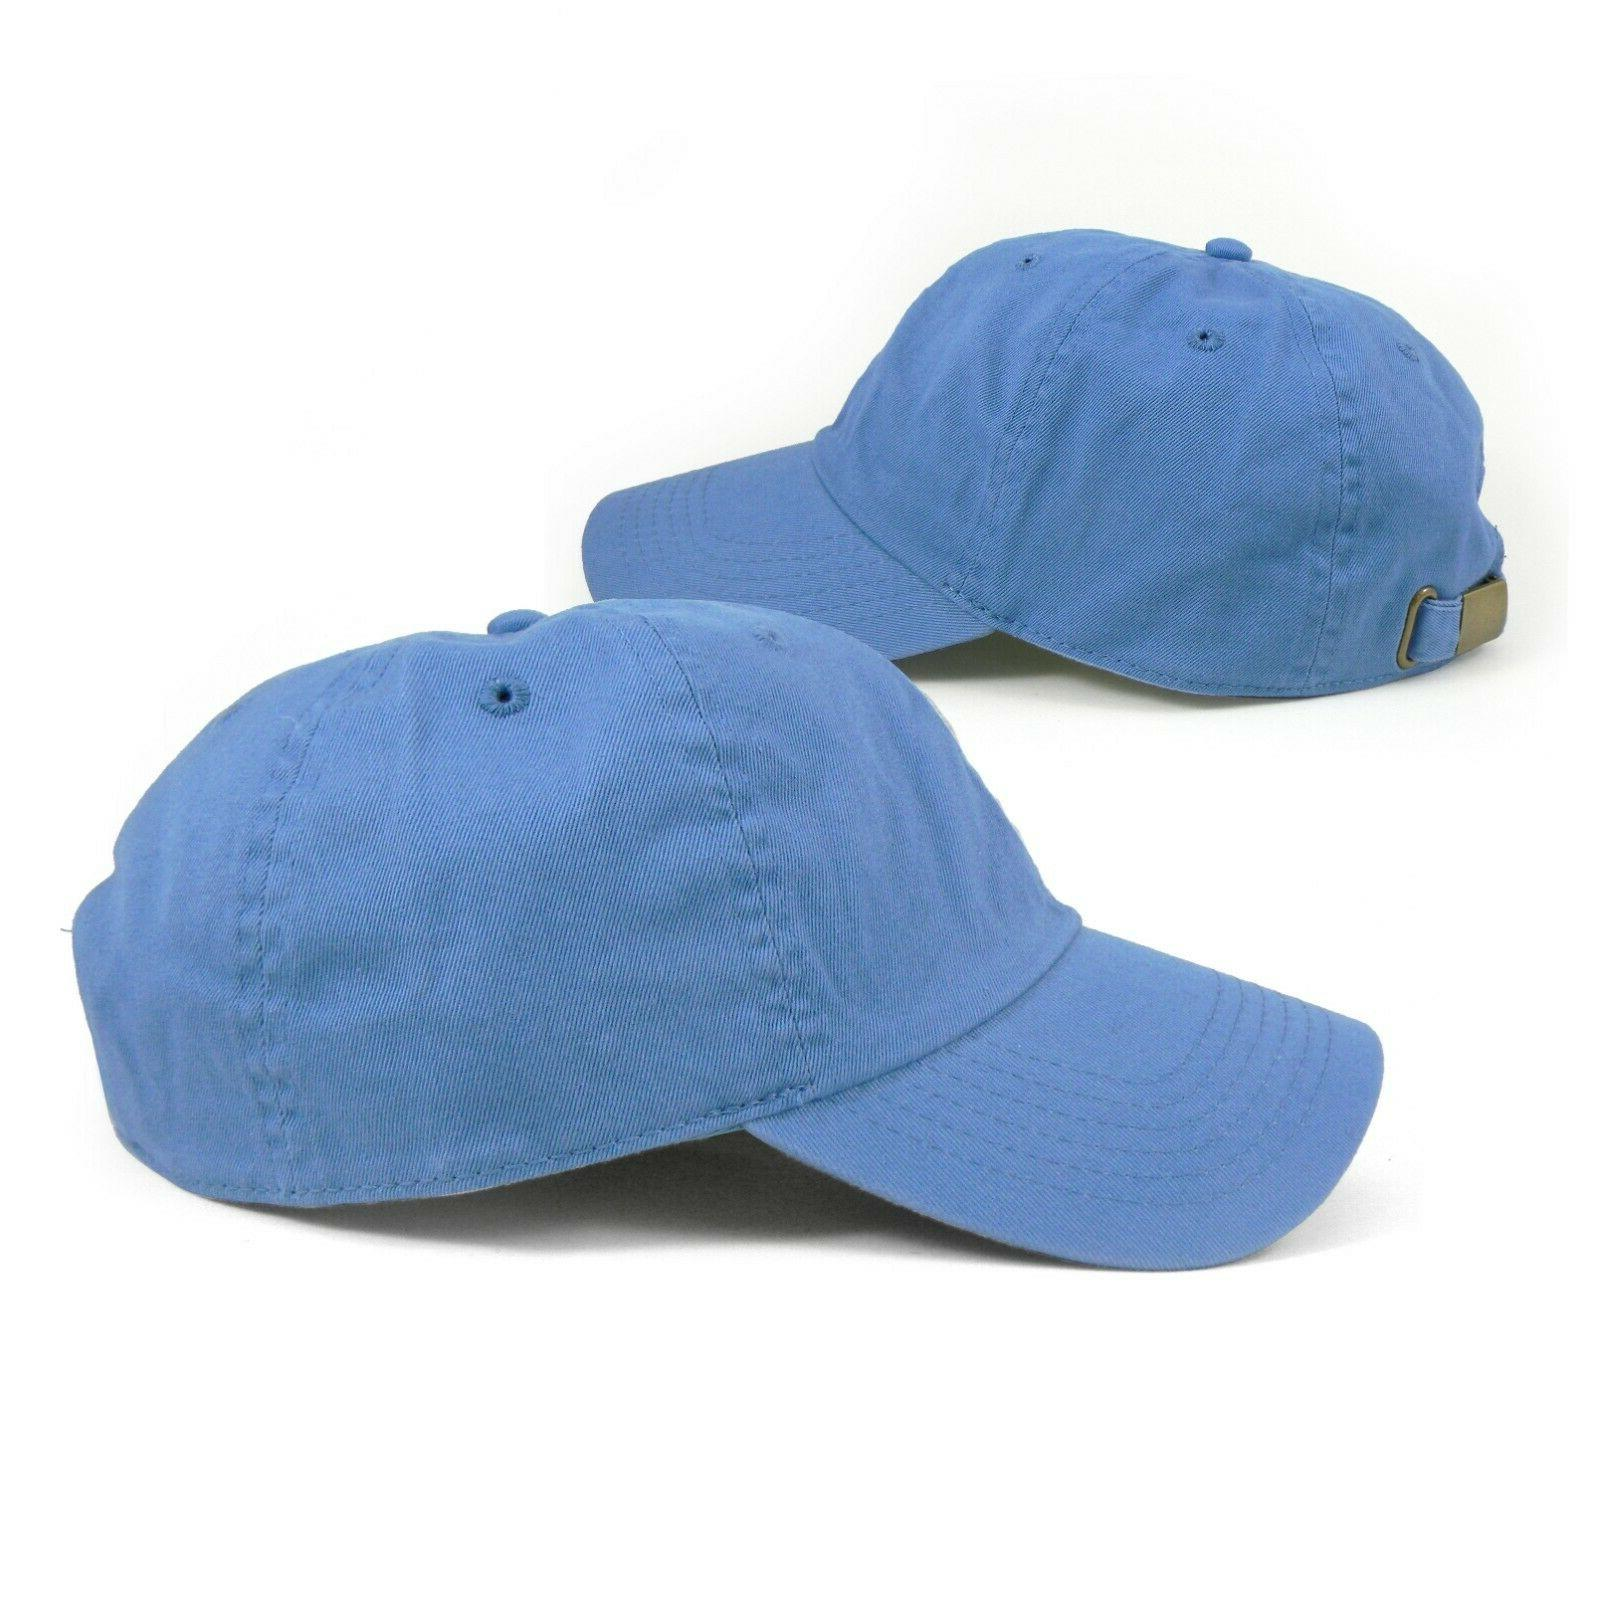 Cotton Cap Caps Hat Polo Washed Plain Dad